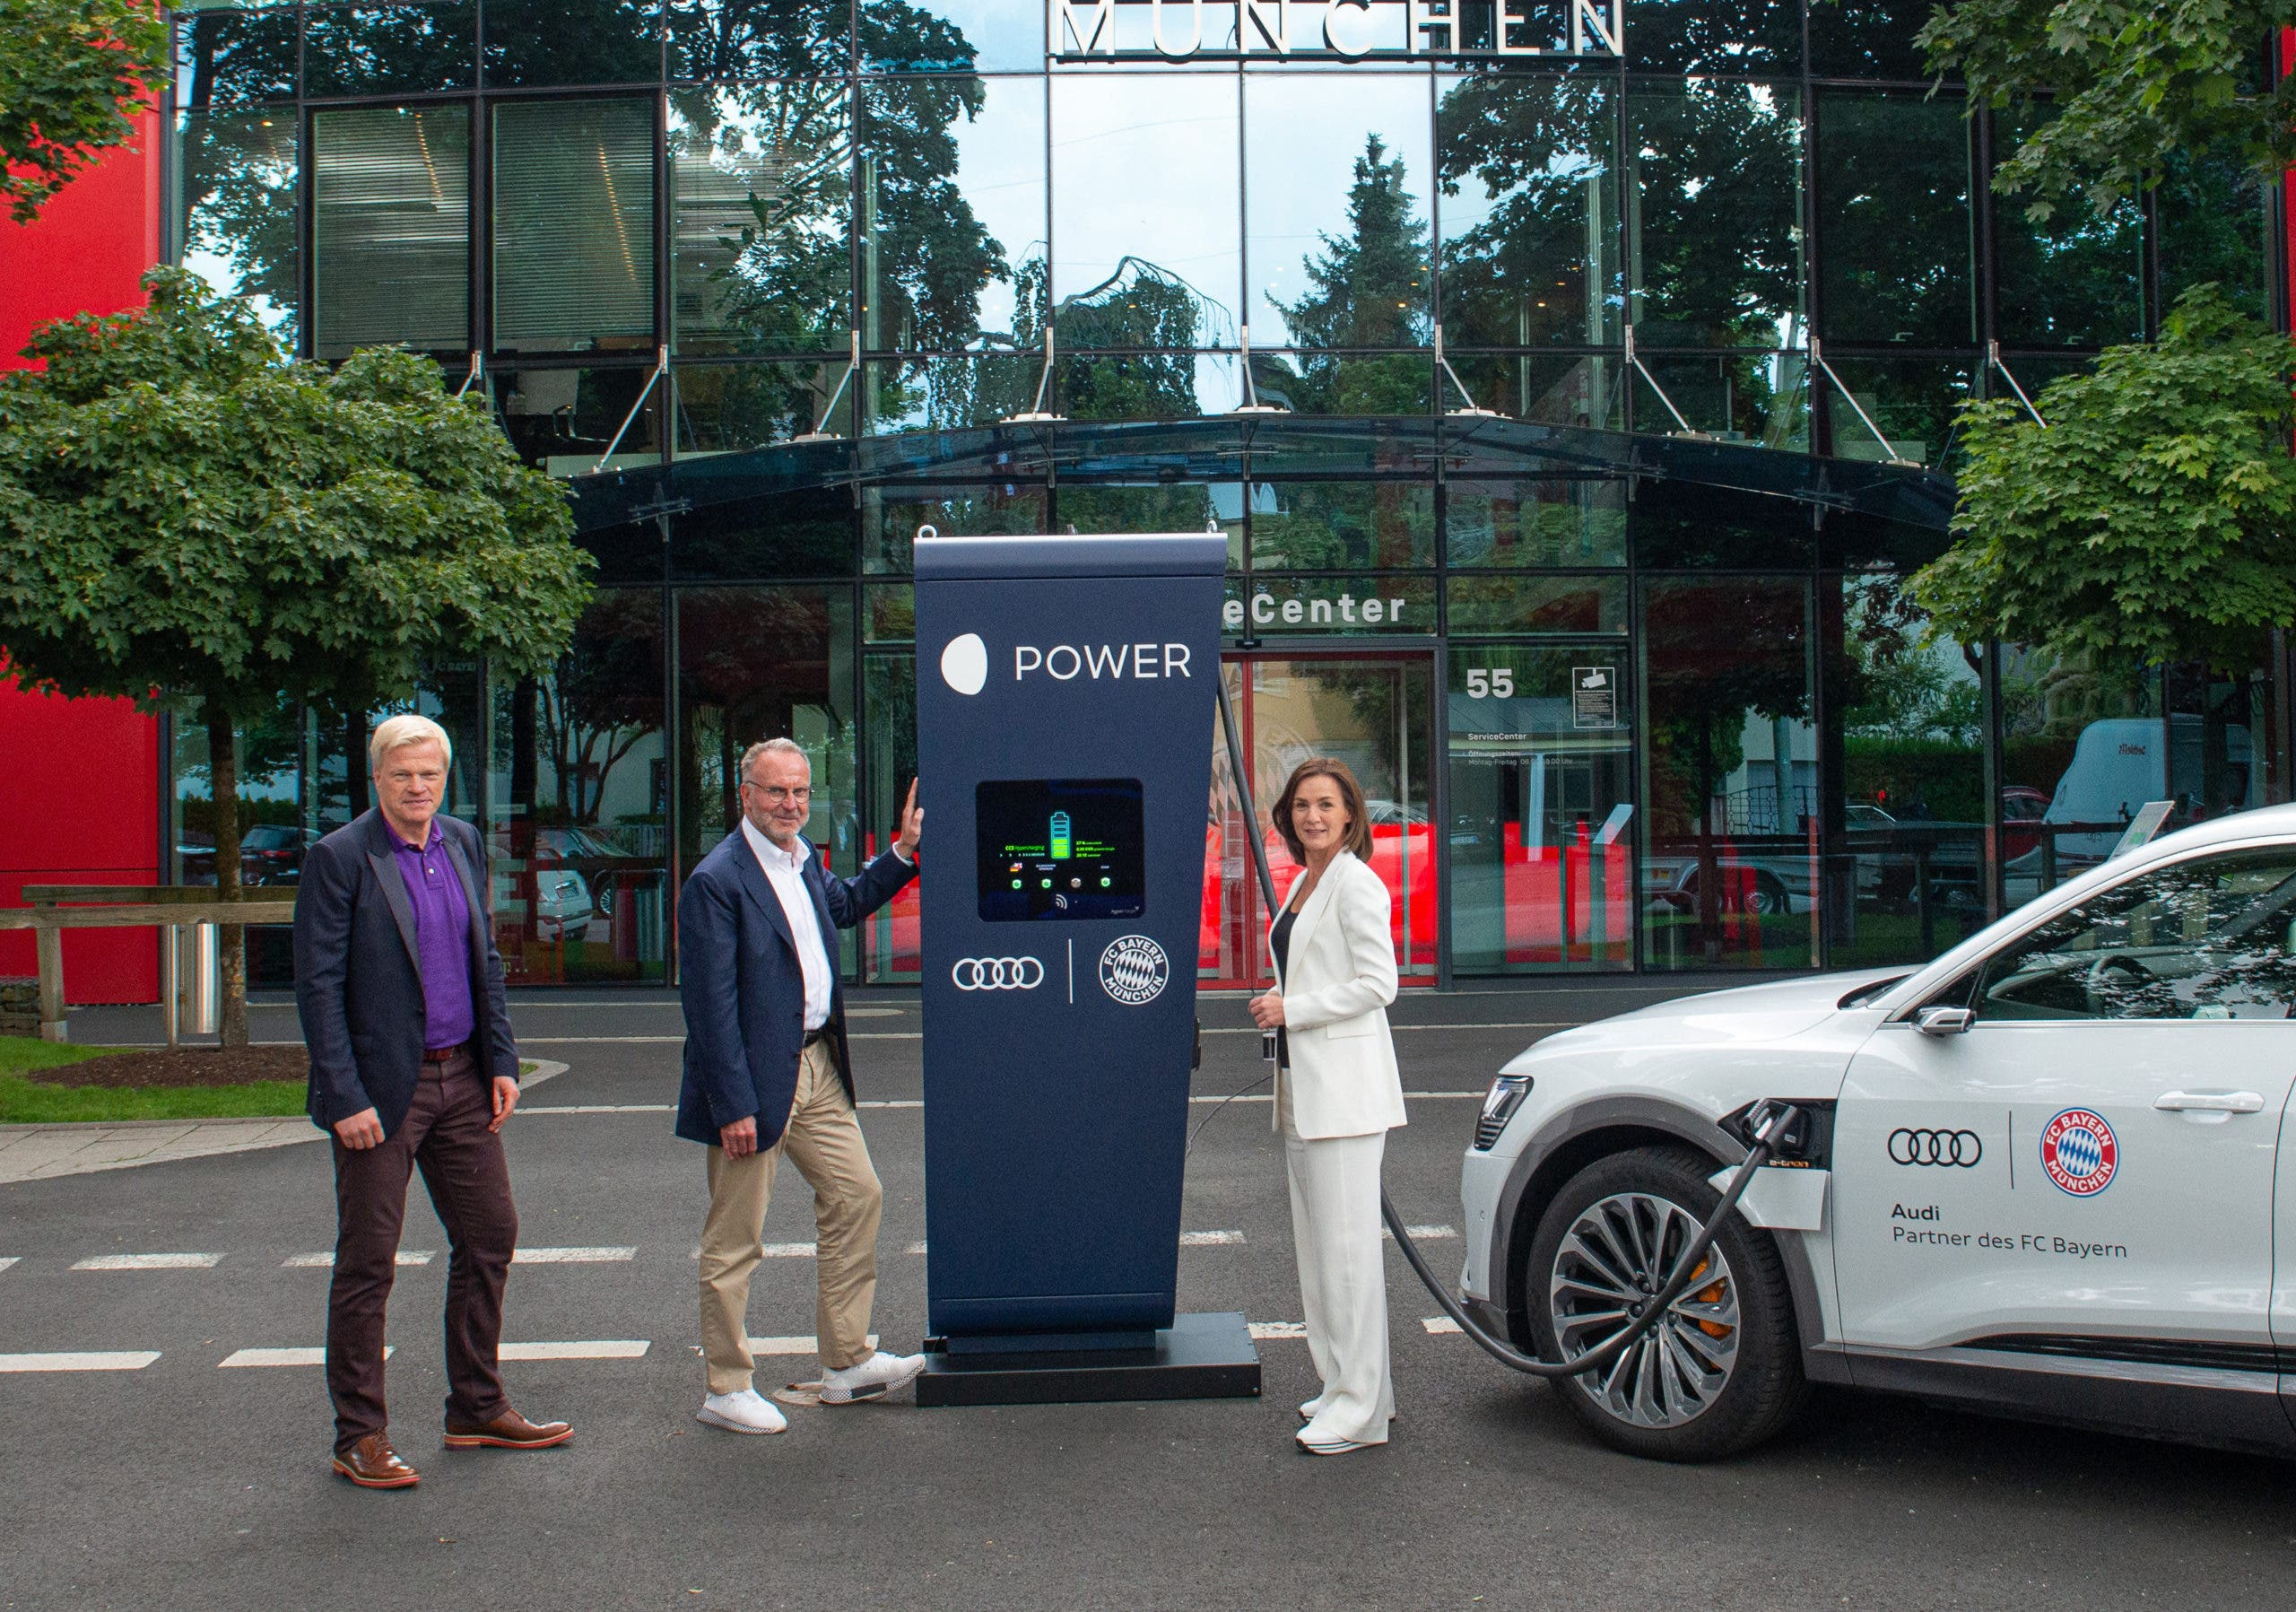 Audi Electrifies Bayern Munich Training Grounds For Team's Coming Audi e-trons